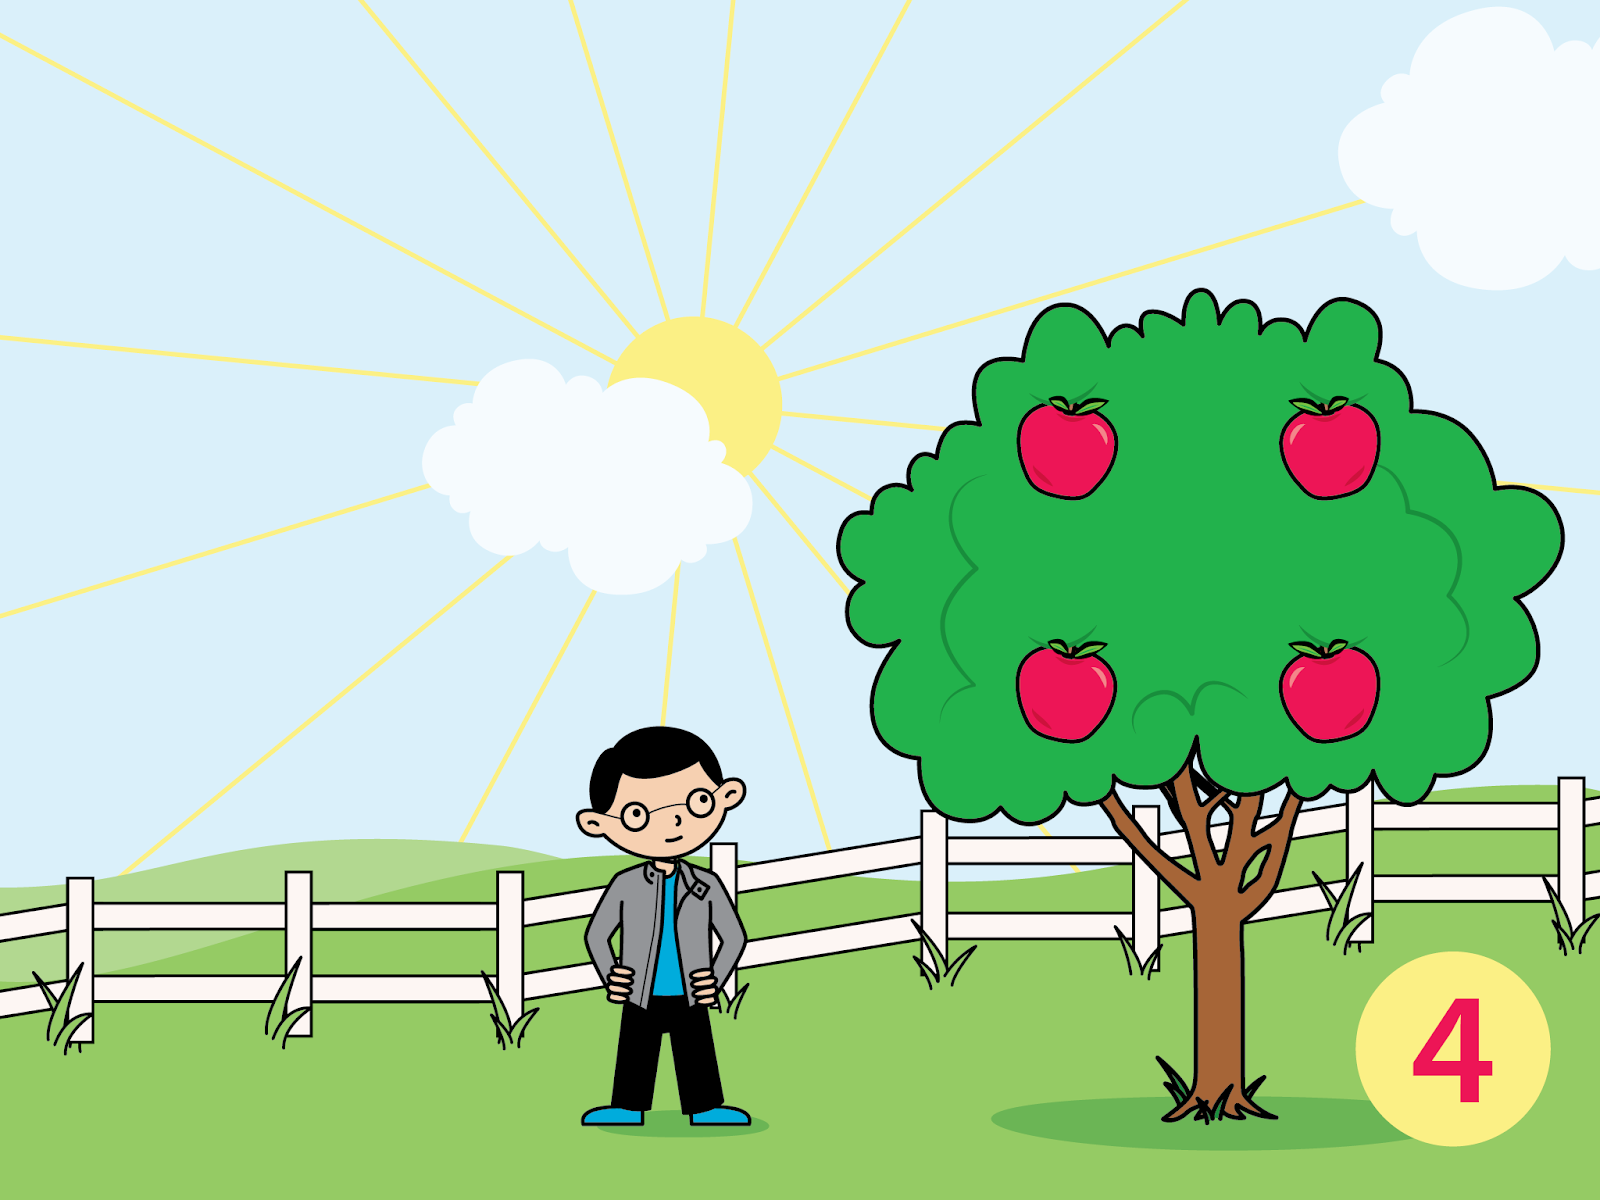 A young person stands next to an apple tree, counting the apples: 1, 2, 3, 4. Notice the shadows under the young person and the tree. How many shadows is that? You need sunshine to make shadows. The sun in this picture has a cloud covering part of it. It also has 11 rays and 5 more behind the cloud. There's 1 more cloud in the sky, too. The fence behind the tree has at least 9 sections. The number 4 is in the corner of the picture.